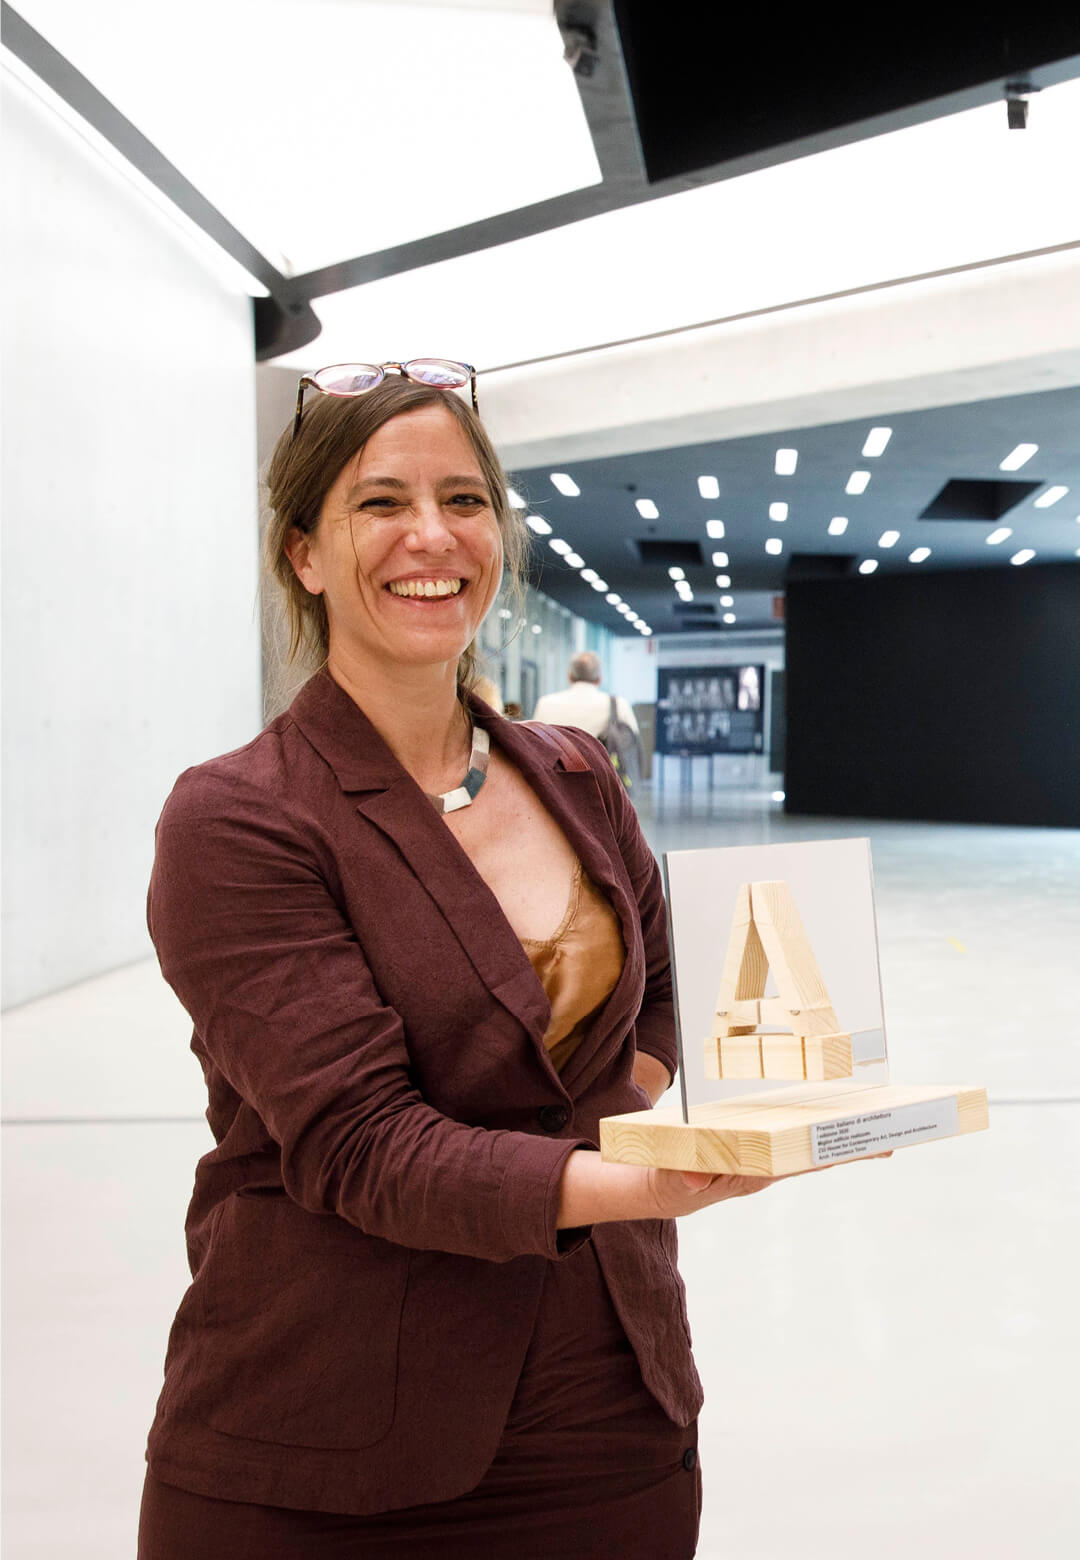 Francesca Torzo and Lucy Styles receive the Italian Architecture Prize at the MAXXI museum in Rome, Italy | Italian Architecture Prize | MAXXI museum| STIRworld